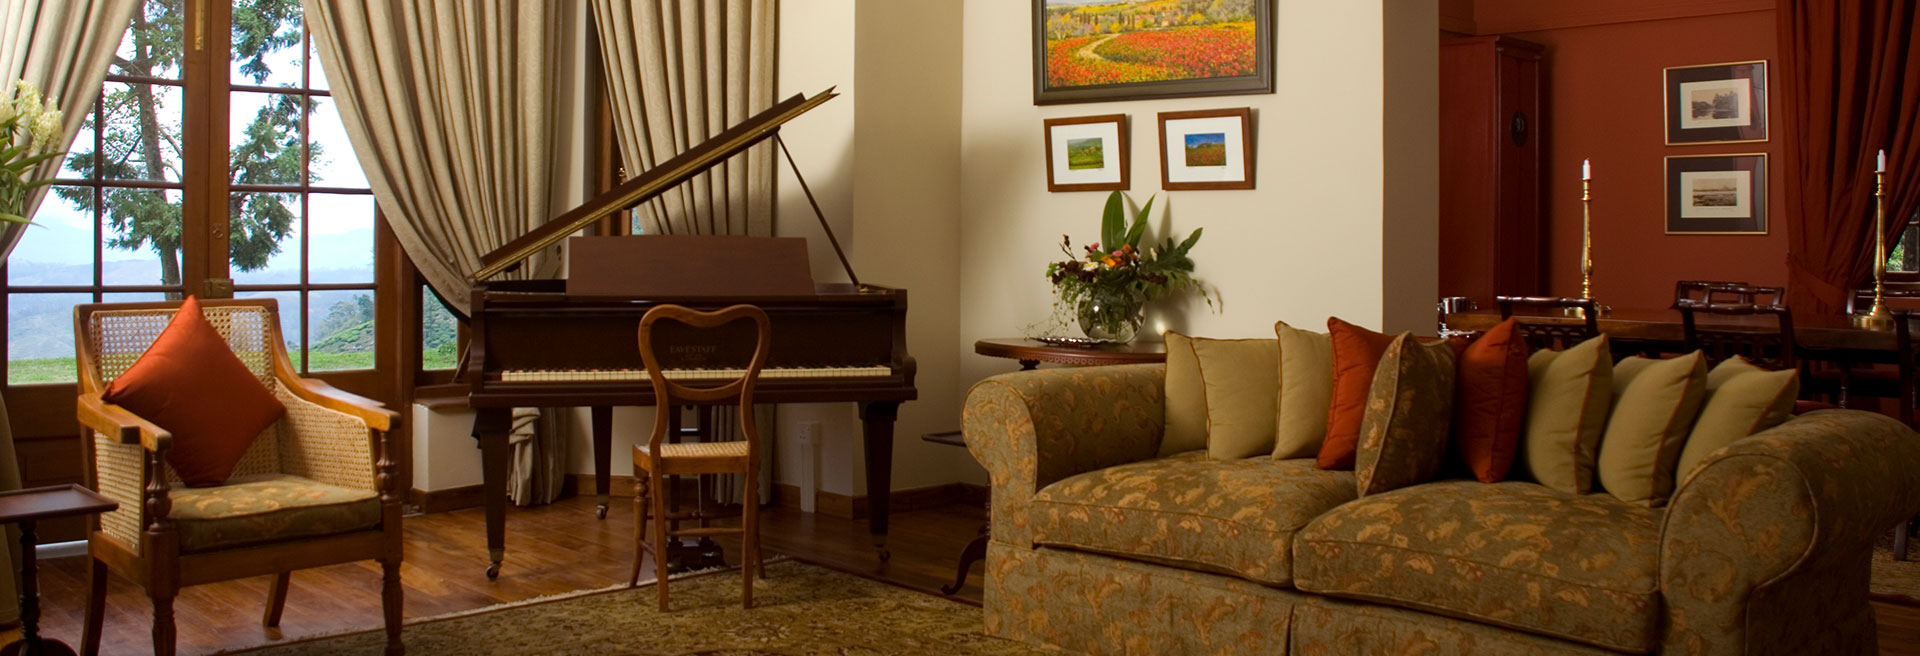 image of In-room piano